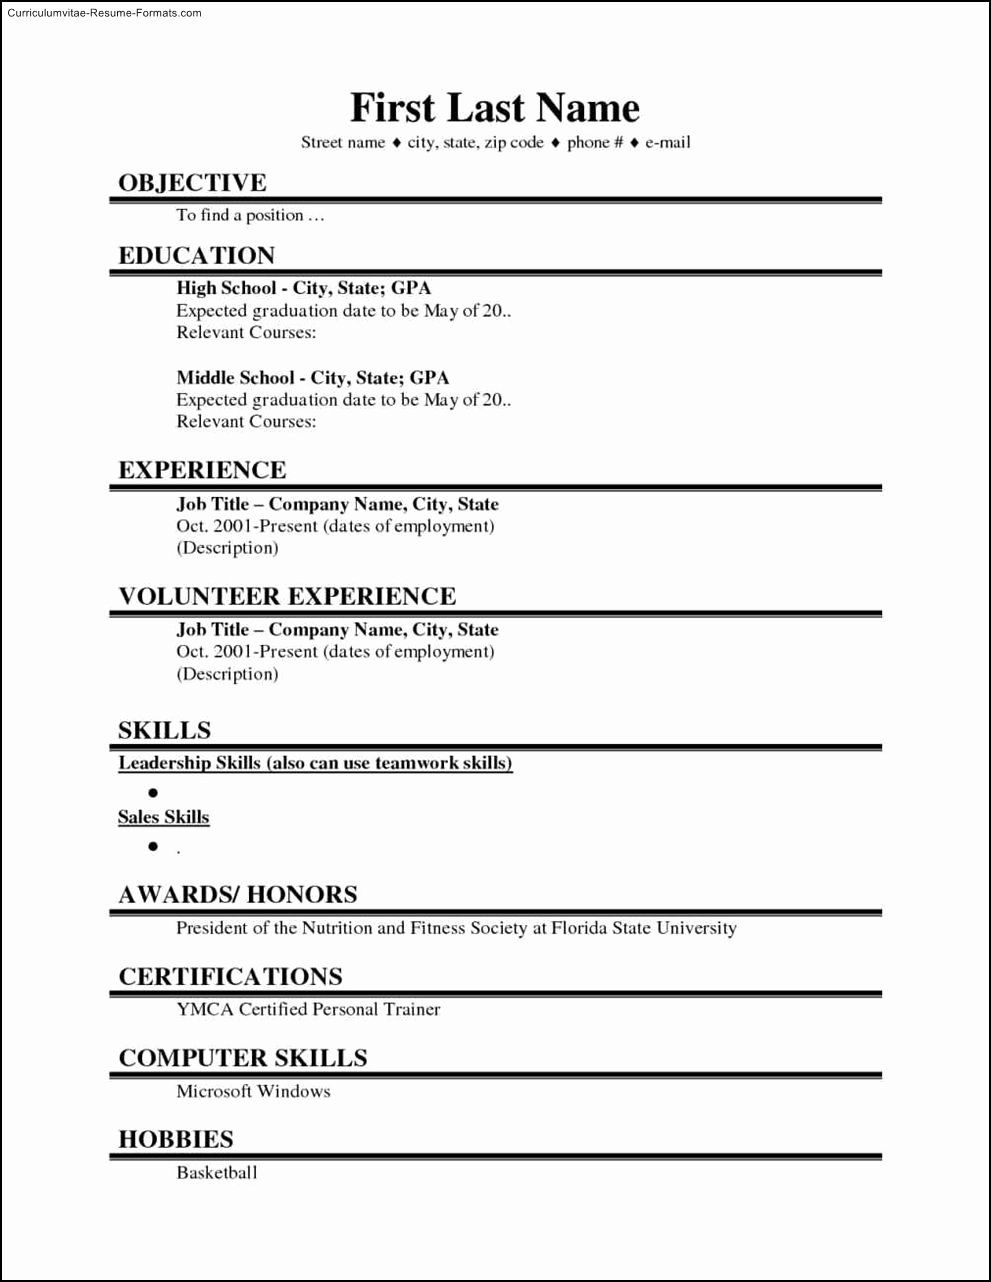 Pin On Resume And Cover Letter Samples And Templates